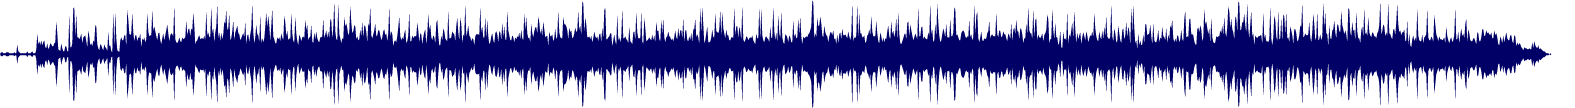 waveform of track #77503